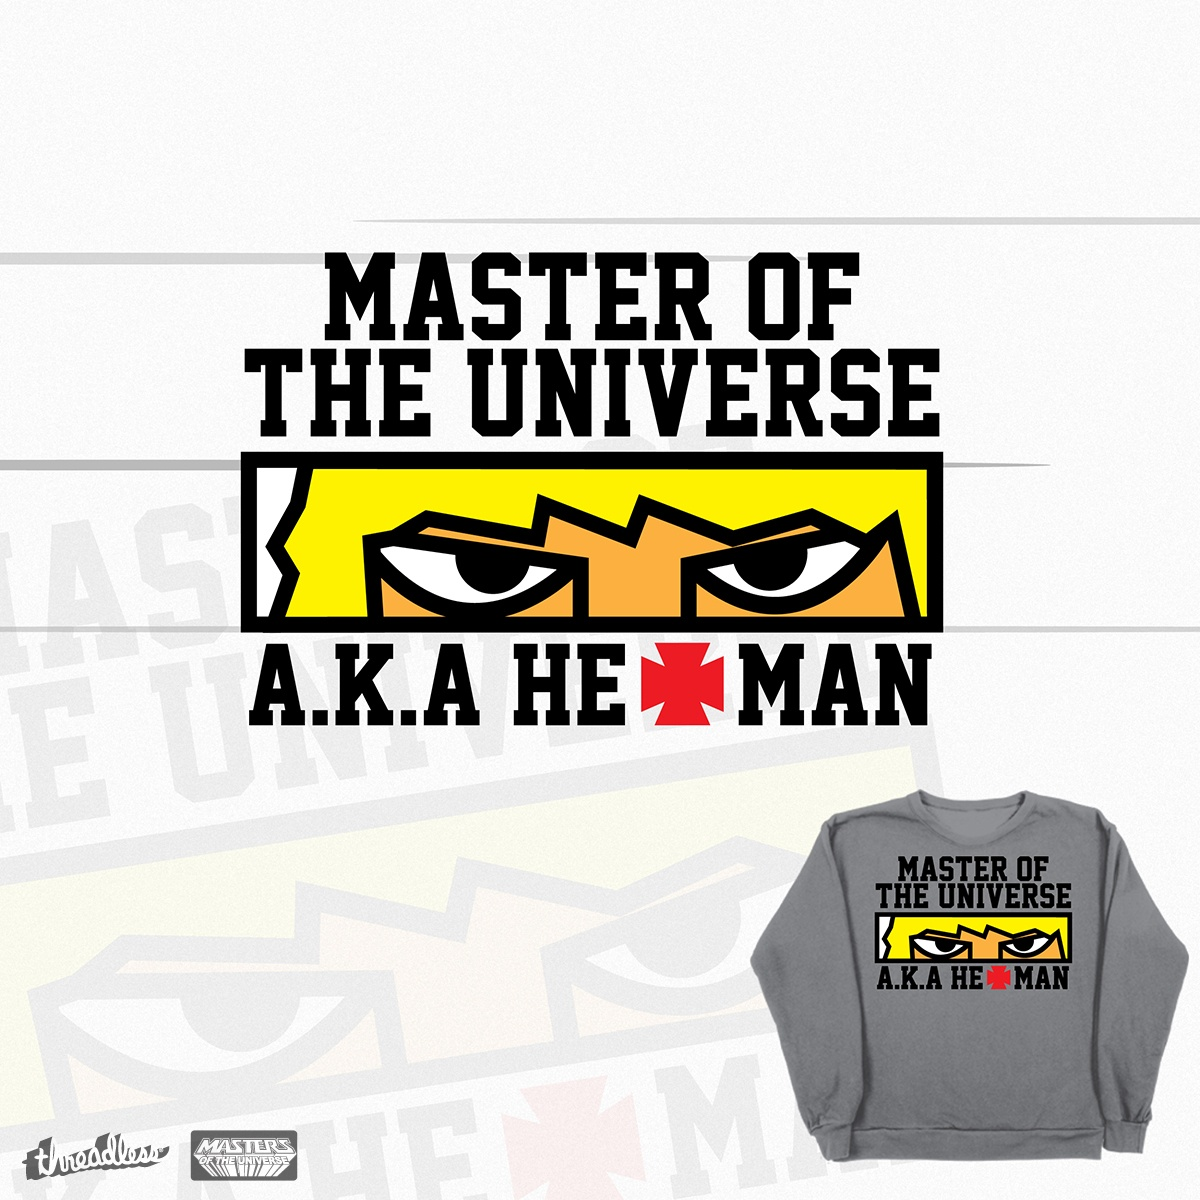 HE-MAN Goes College!, a cool t-shirt design